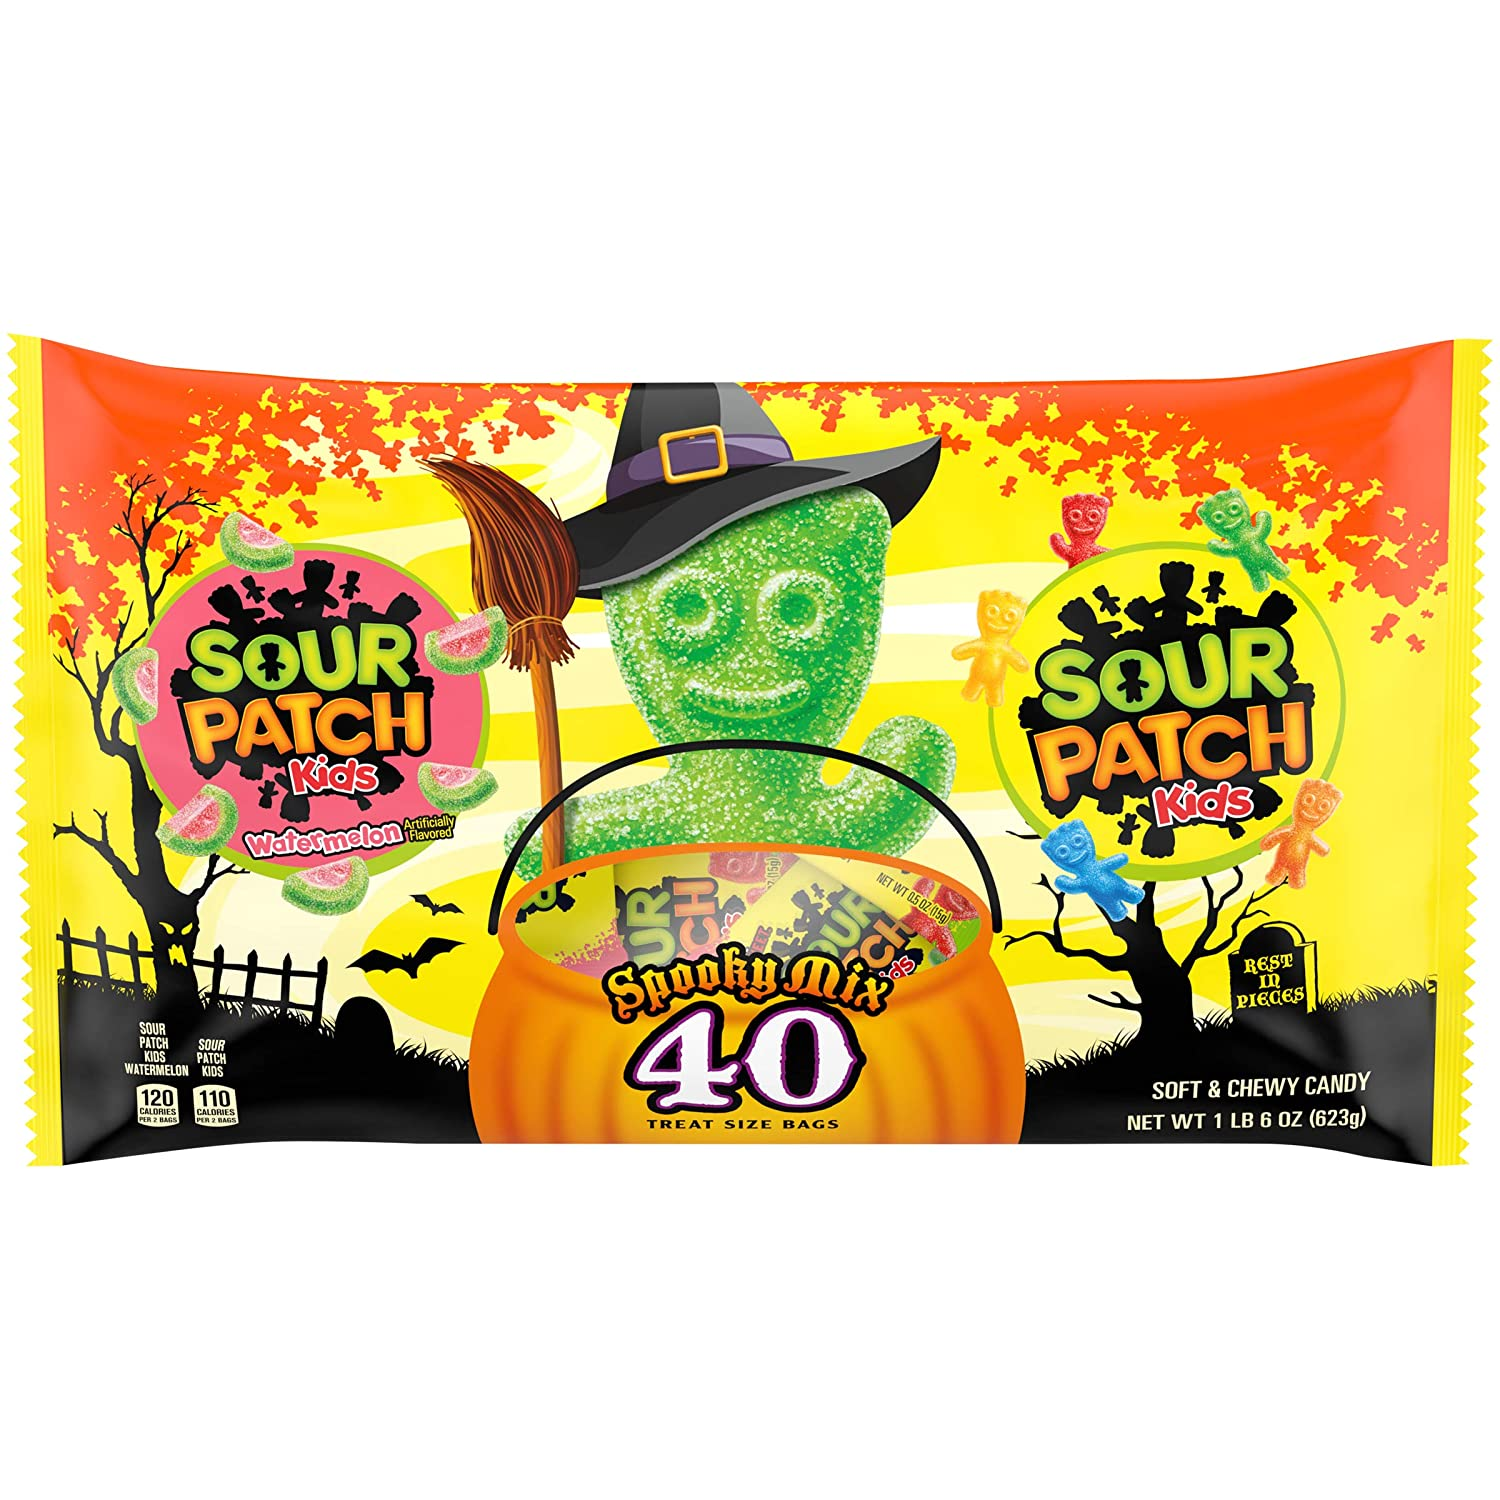 Sour Patch Kids Seasonal Treat Size Halloween Candy, 1 Pack of 22 Ounce -  Walmart.com - Walmart.com